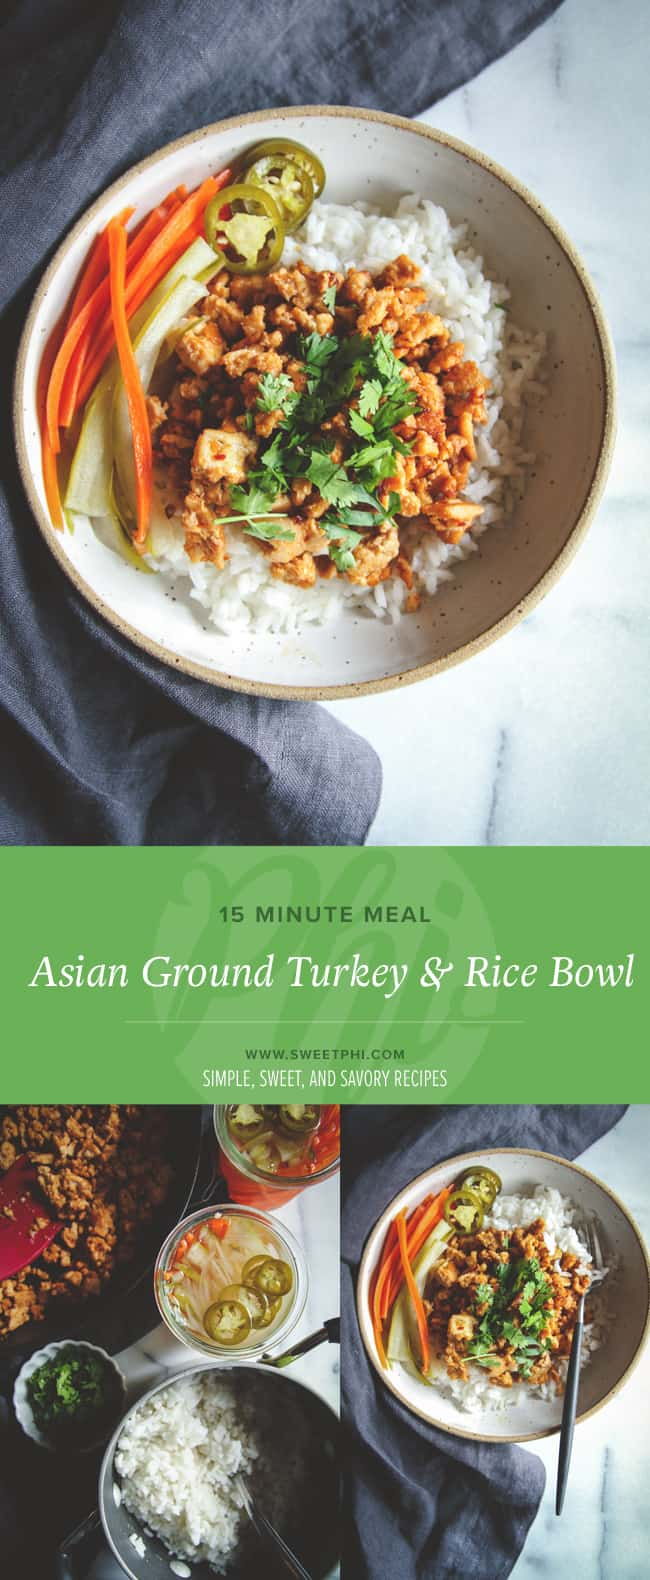 Easy recipe for asian ground turkey & rice bowls